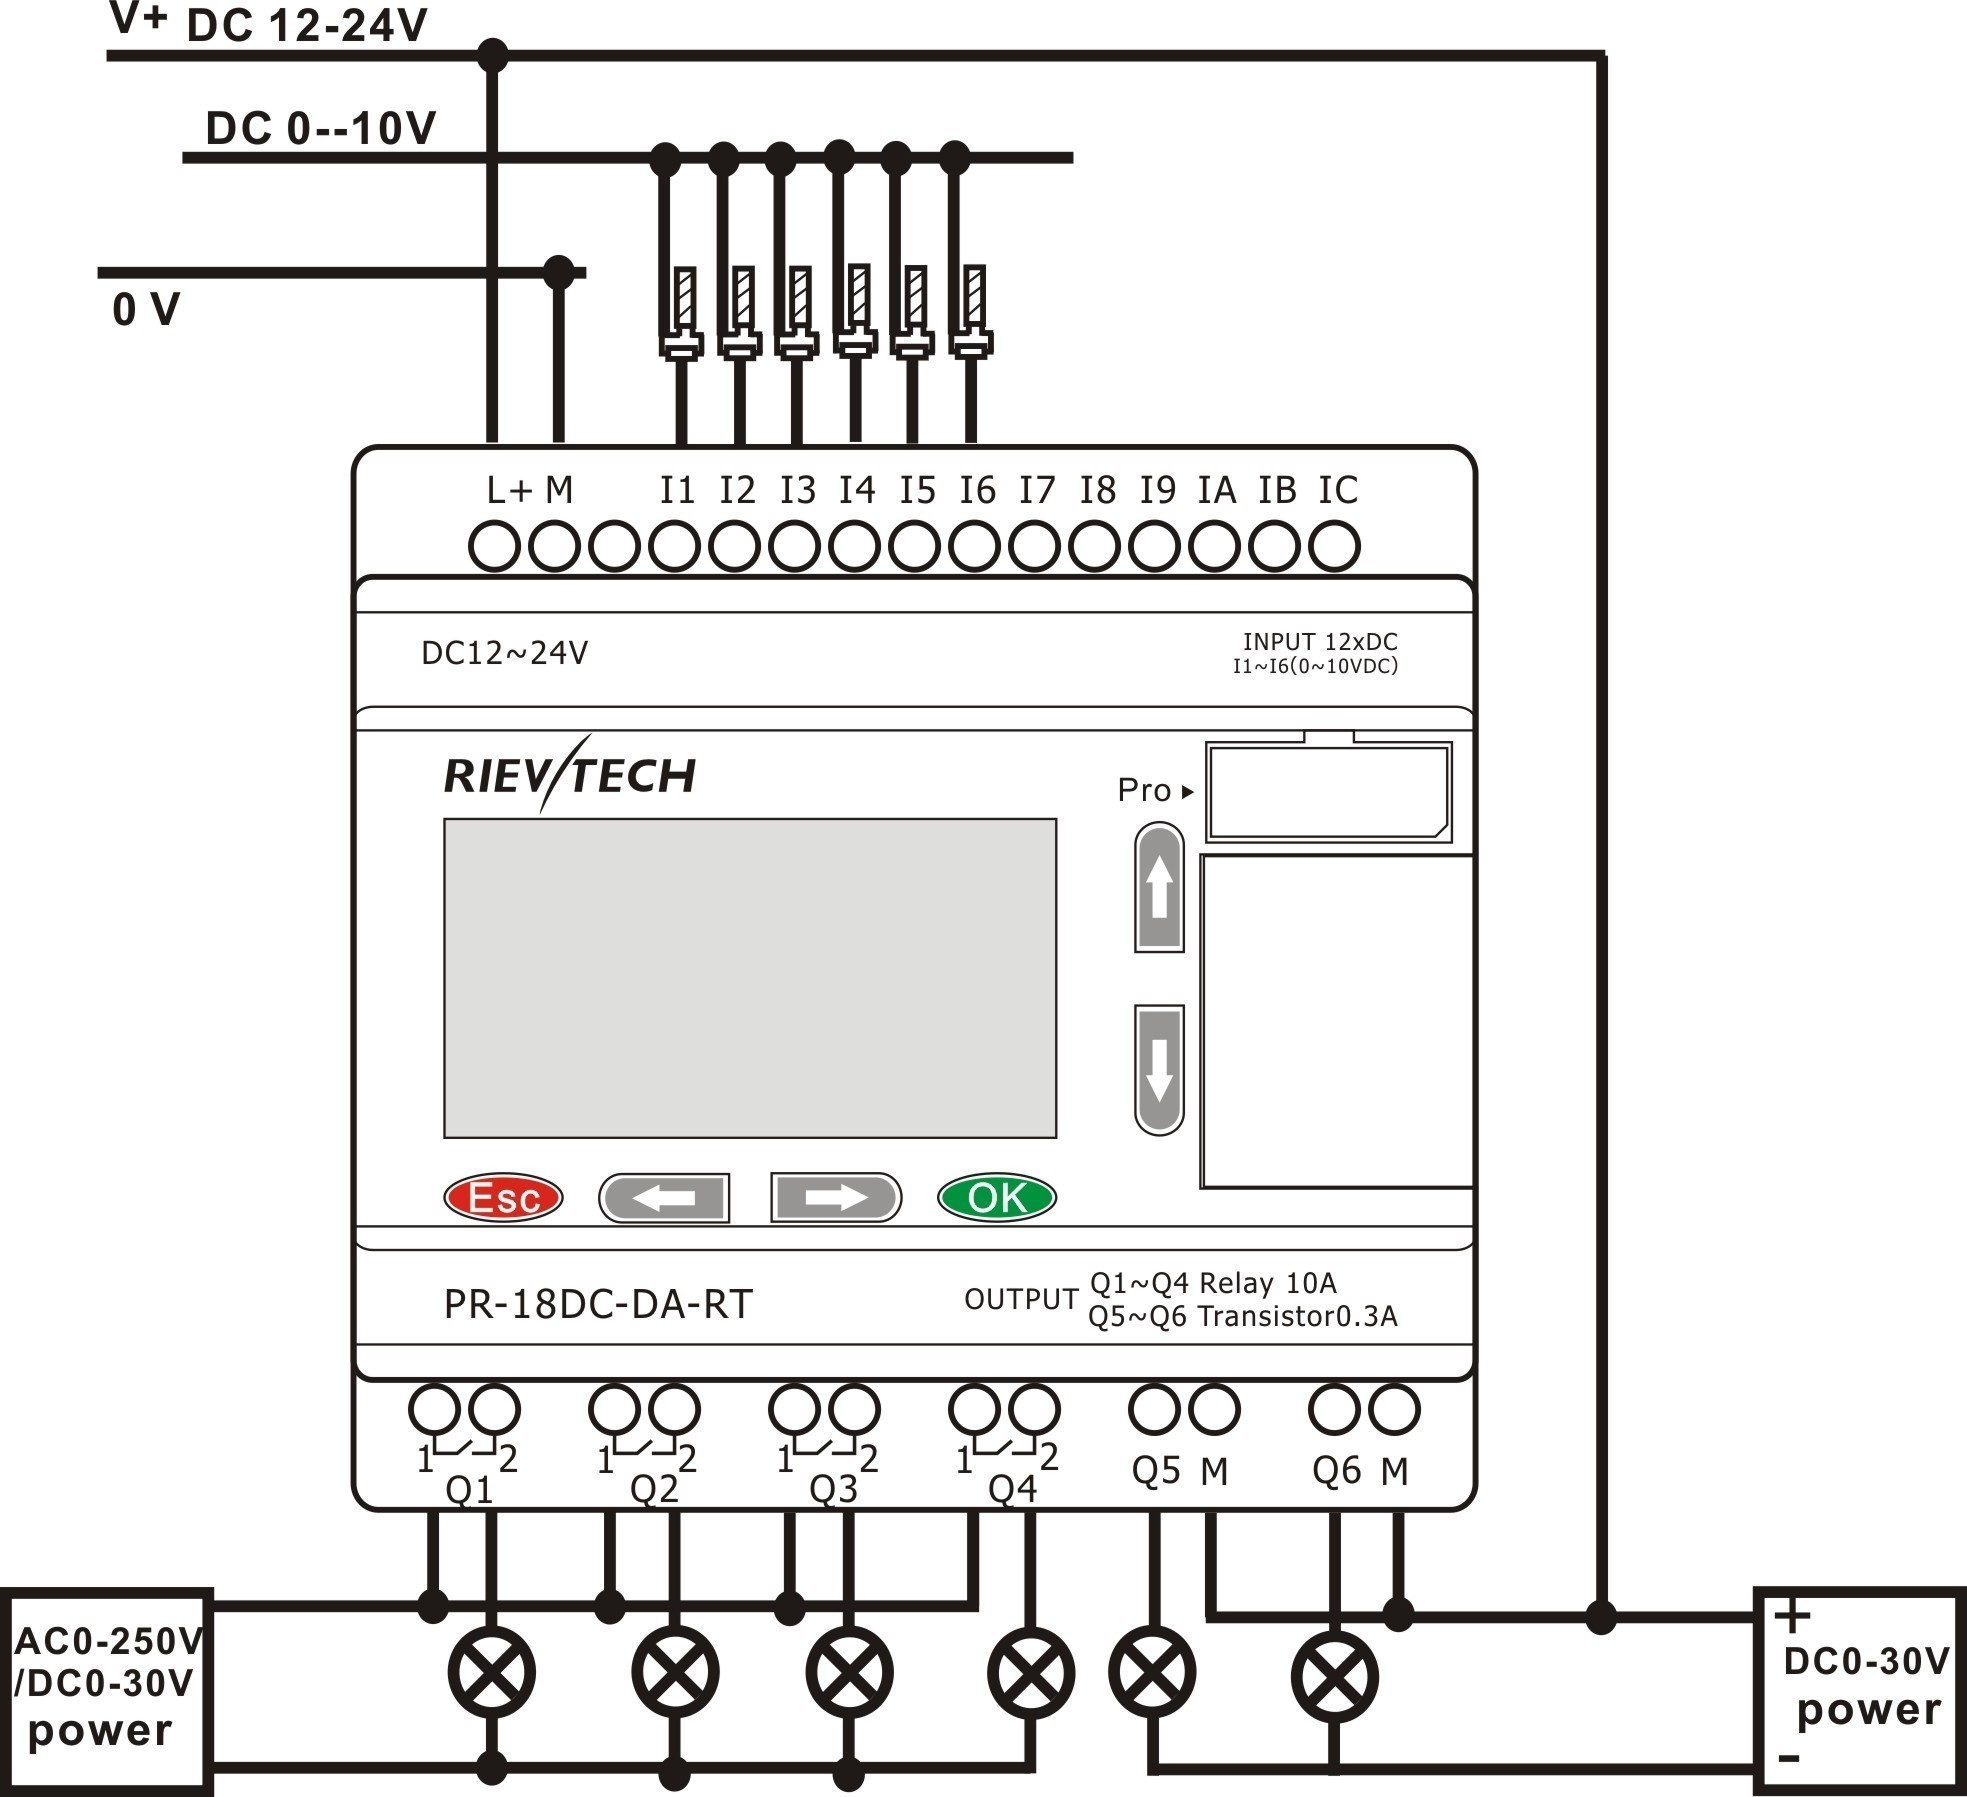 hight resolution of wrg 1757 250v schematic wiring diagram 250v schematic wiring